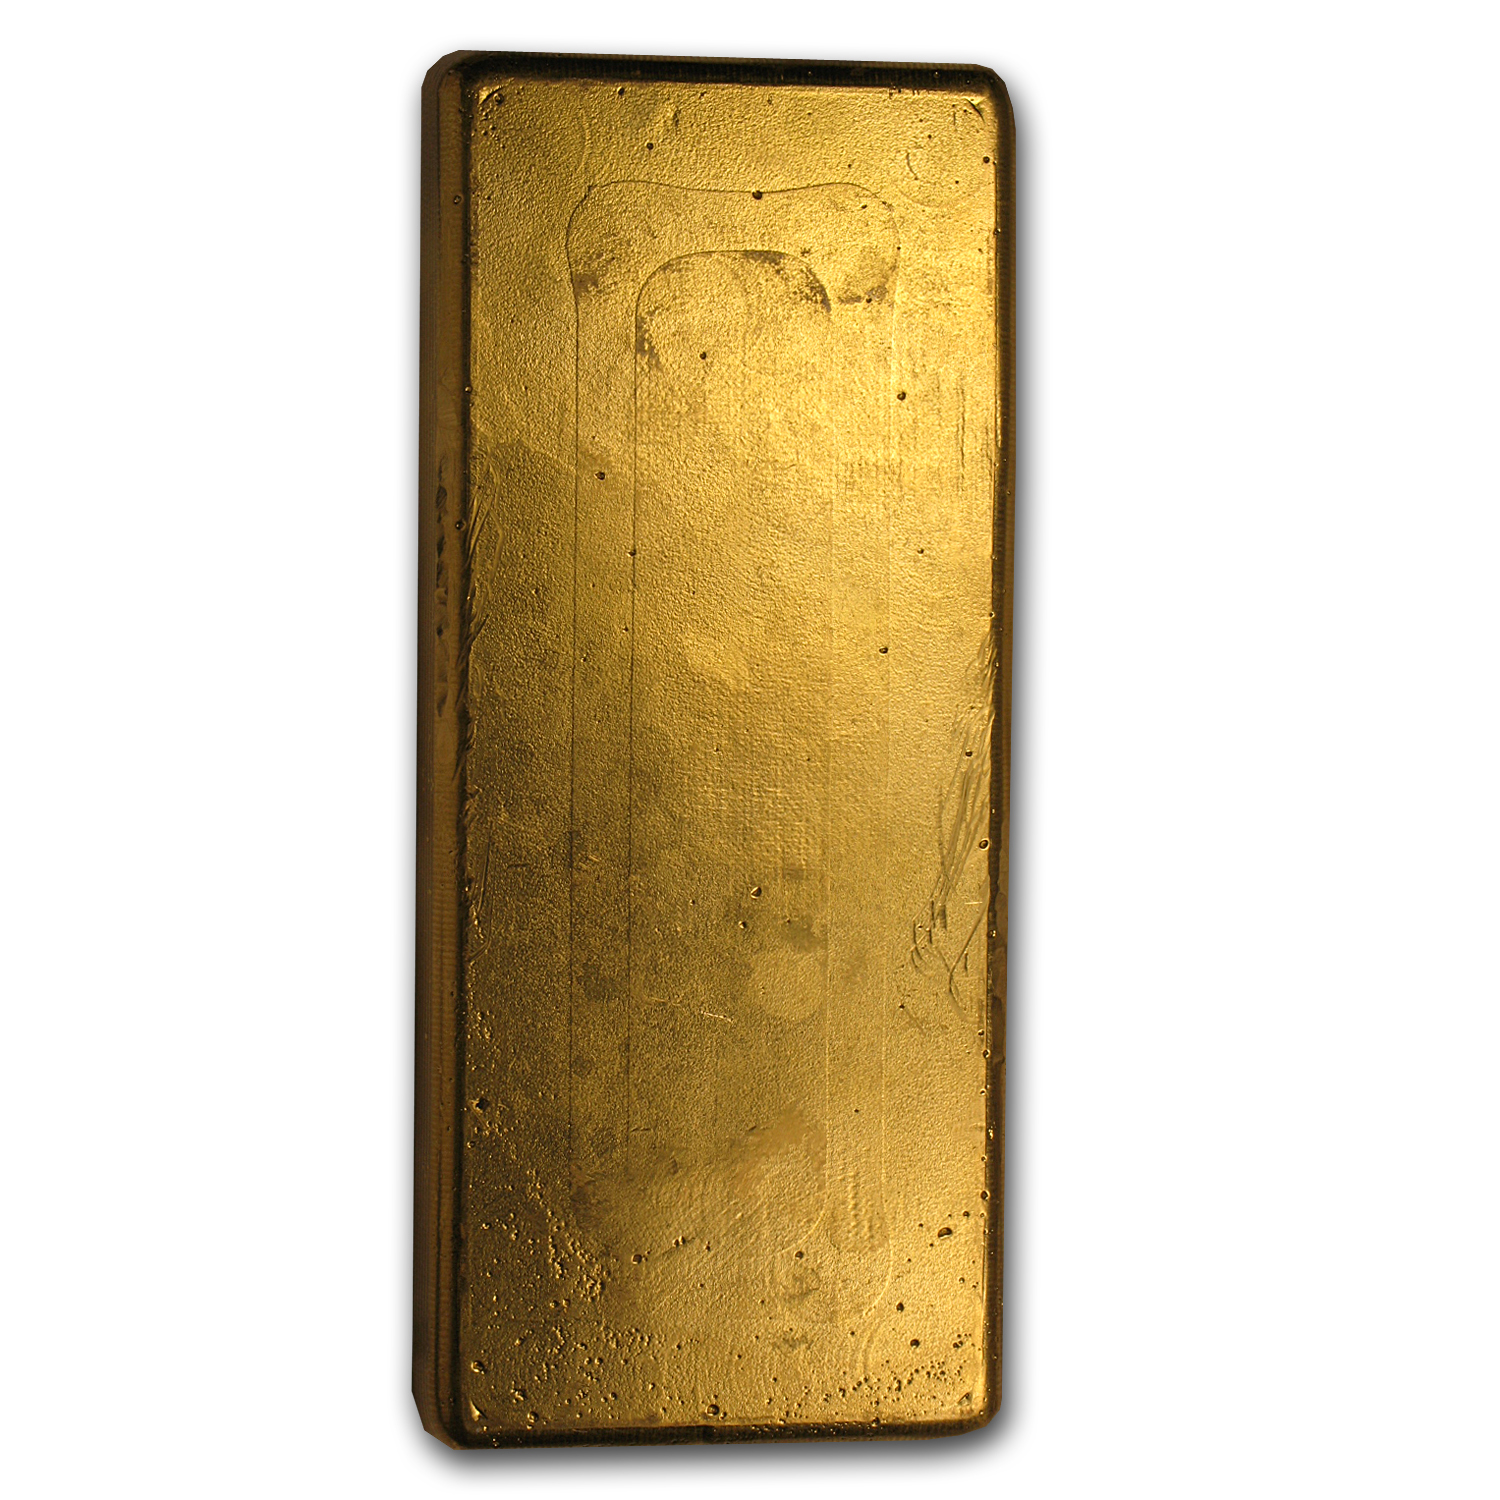 1 kilo Gold Bar - APMEX